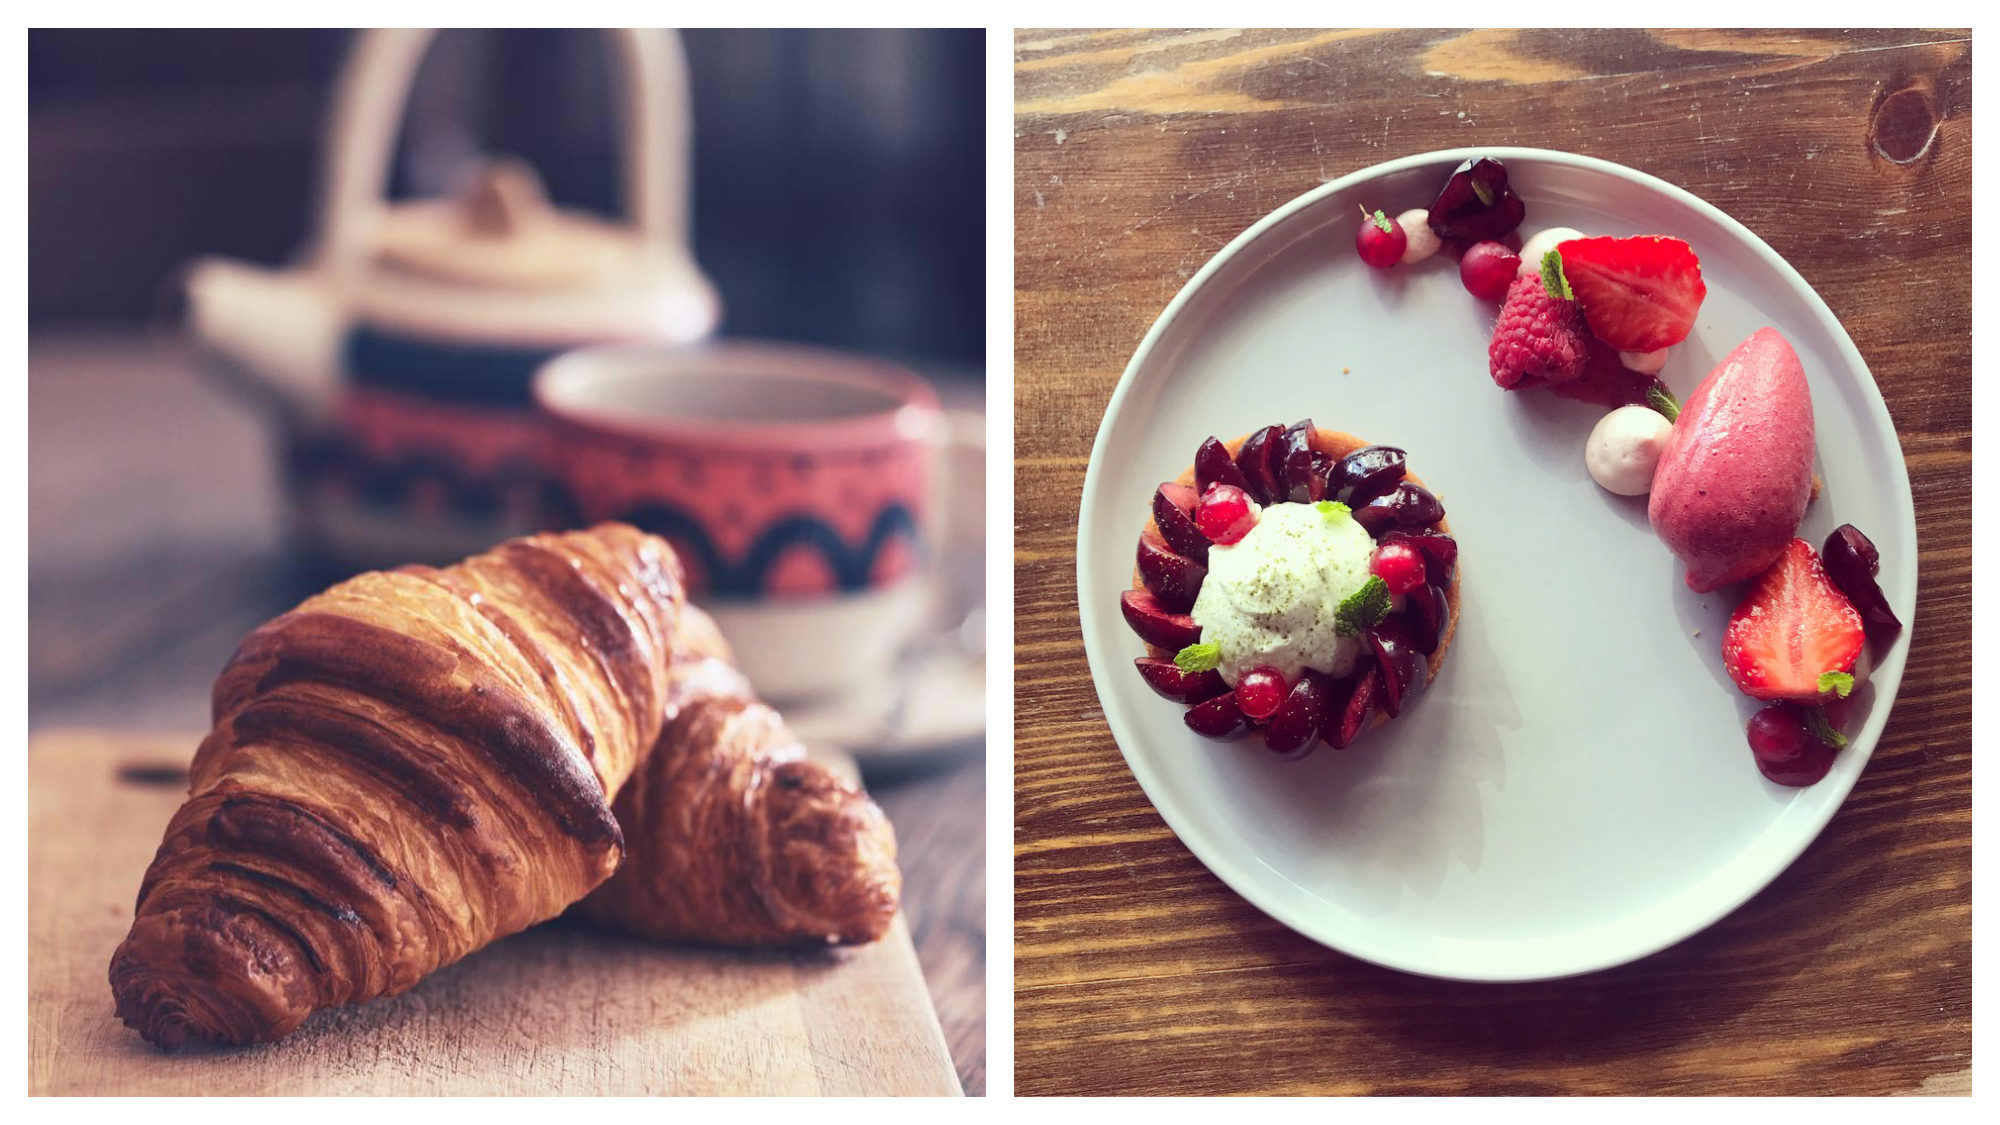 Café Mirabelle is a top spot for coffee and cake in Paris, especially its crusty croissants (left) and fruit meringue tarts (right).